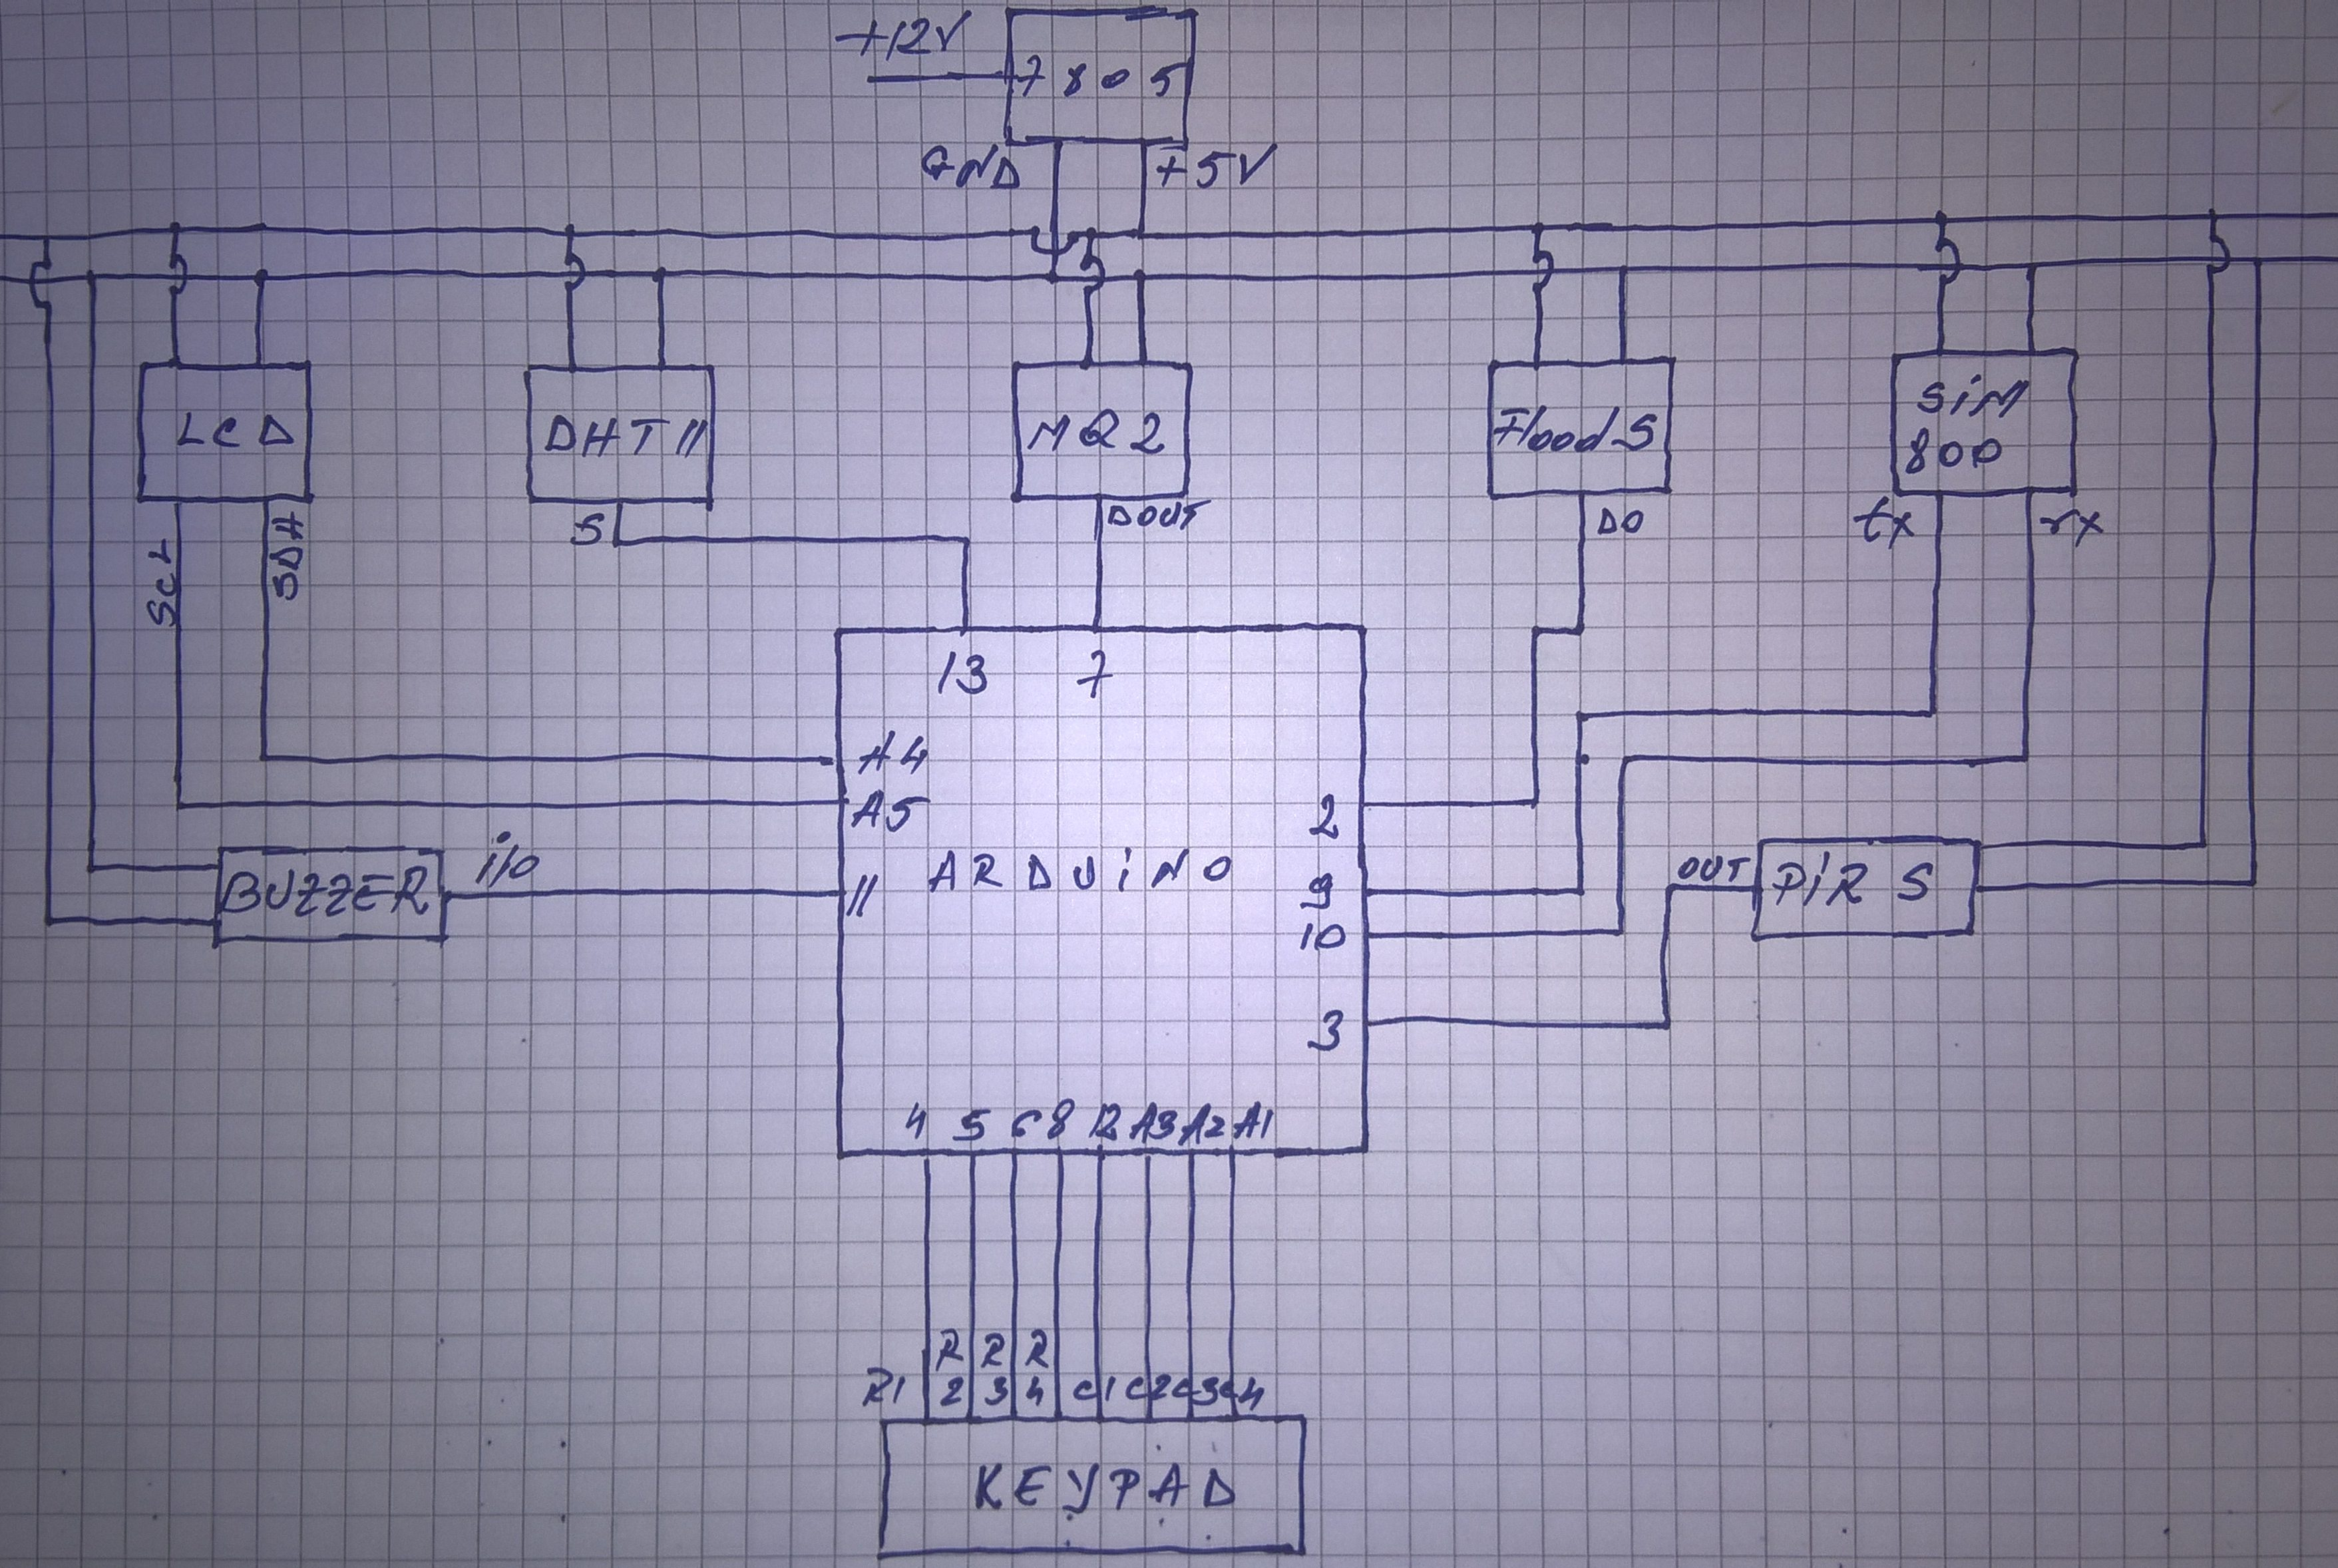 Mq2 Smoke Sensor Circuit Built With An Arduino How To Make A Security Surveillance System For Your Home Wiring Diagram